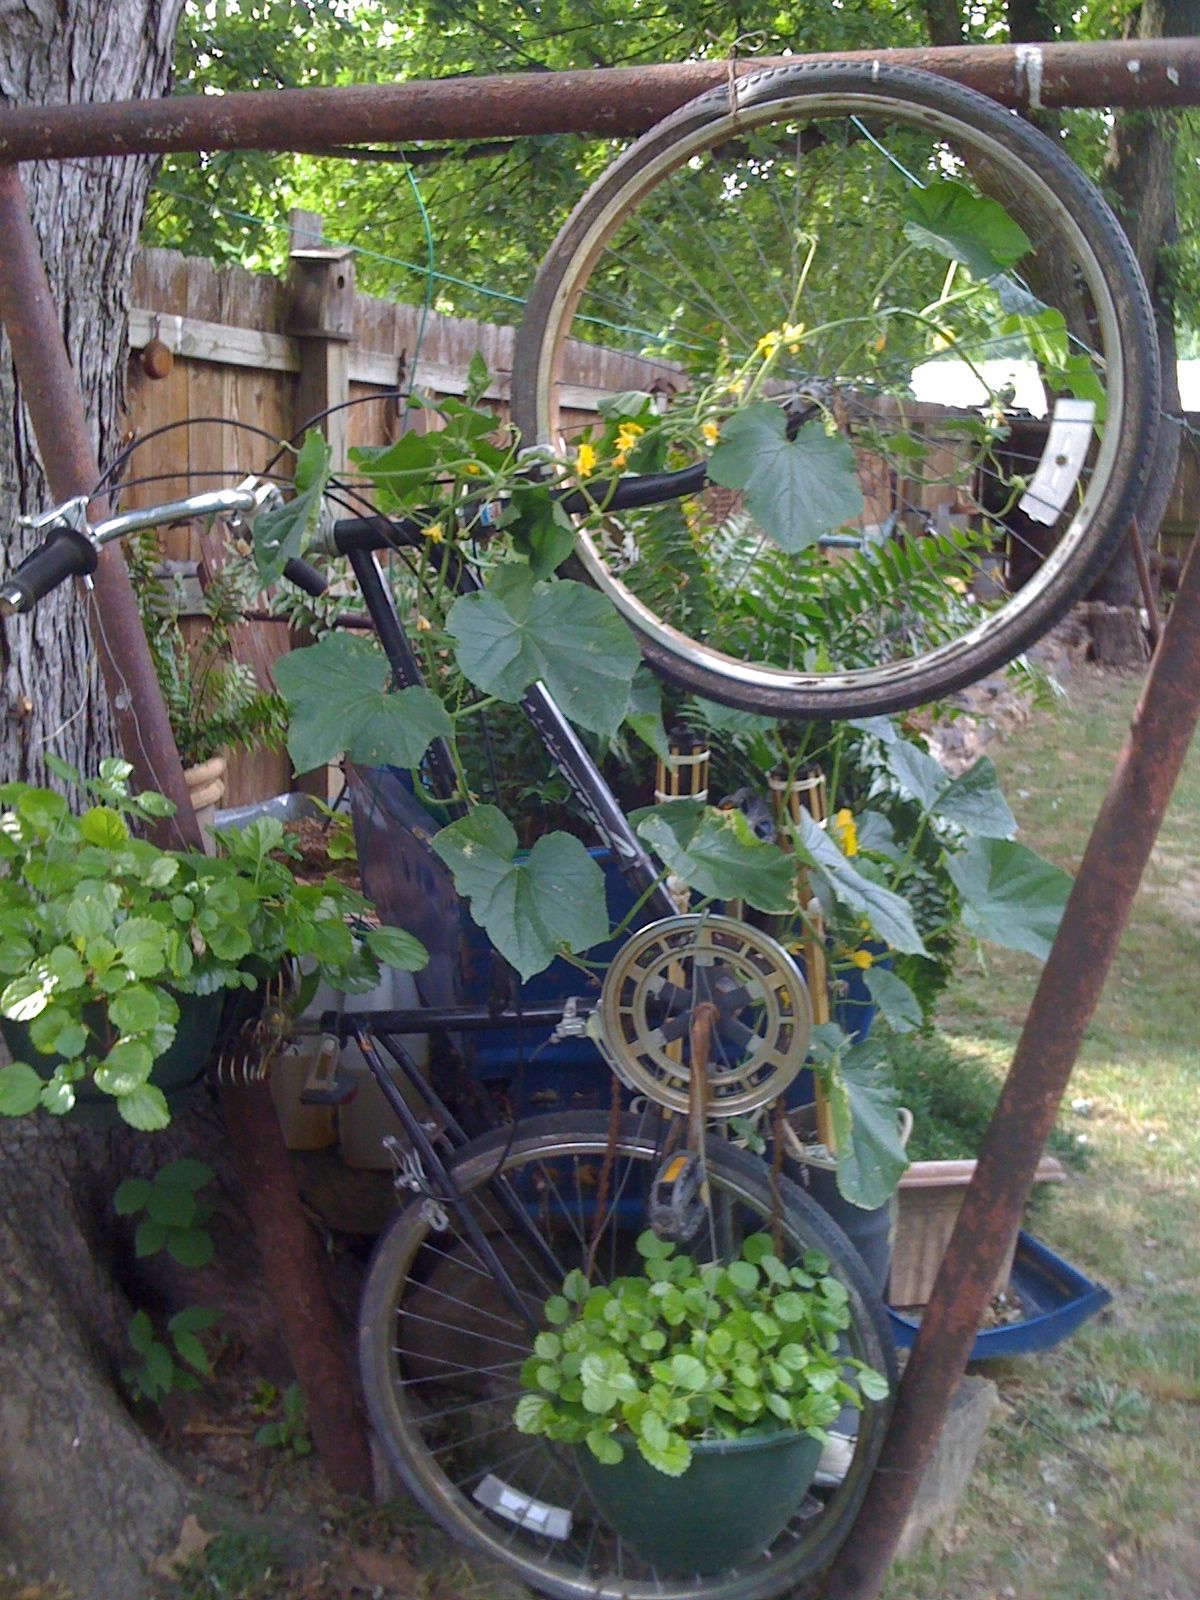 Bicycle on the clothes line frame. Has a cucumber growing on it out of the fire boots Willie gave me. 2012